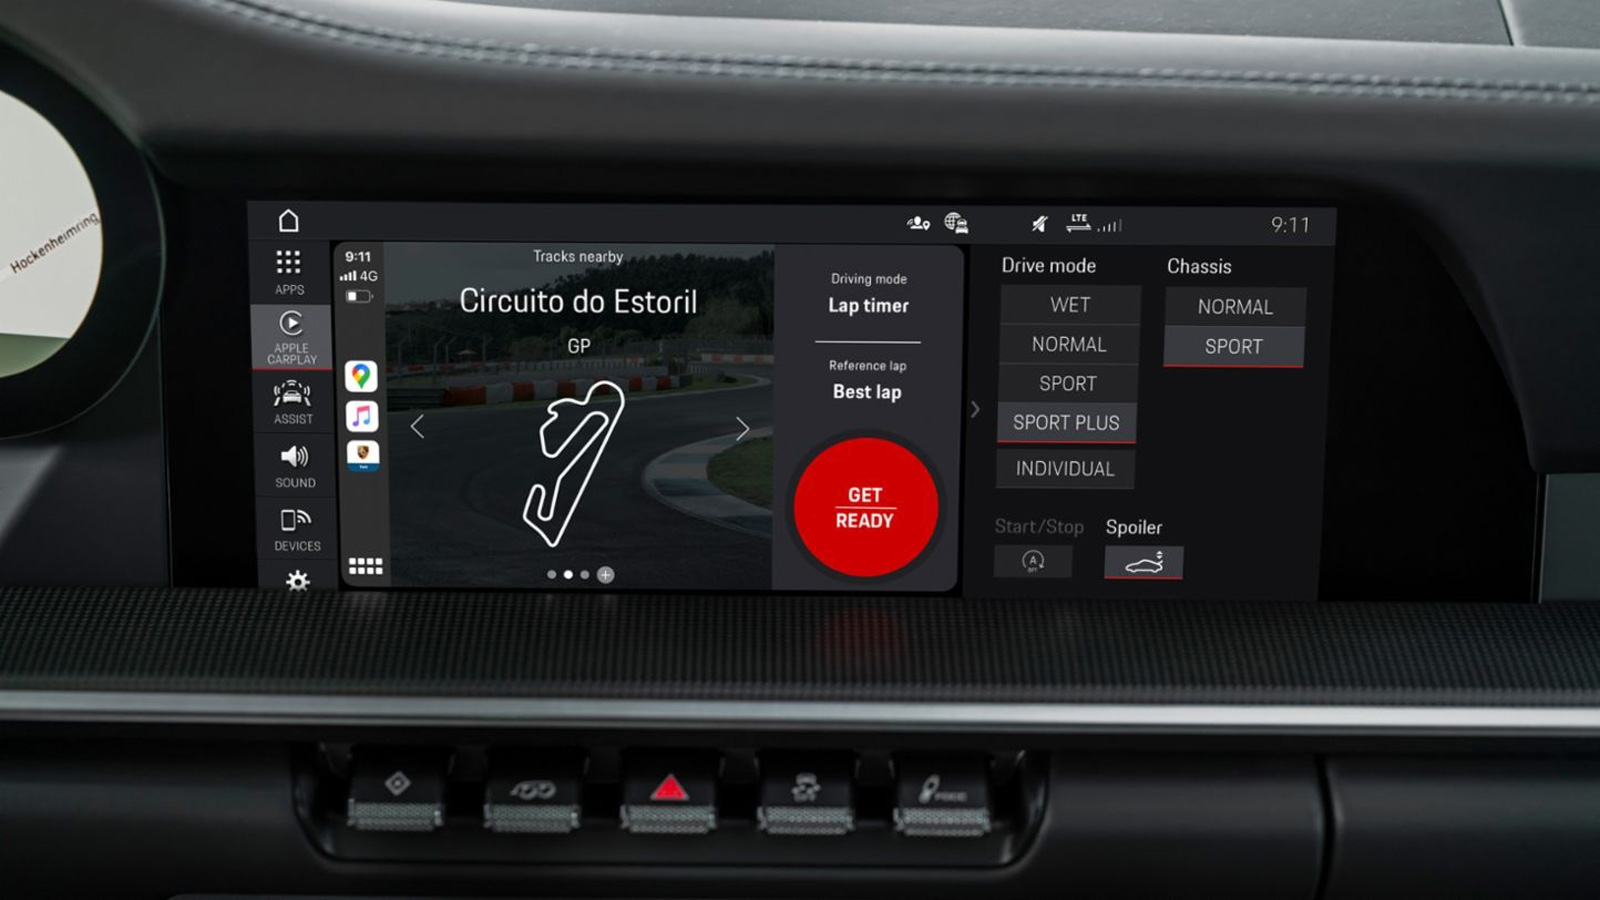 Porsche's track app uses CarPlay to show lap data while you drive | DeviceDaily.com